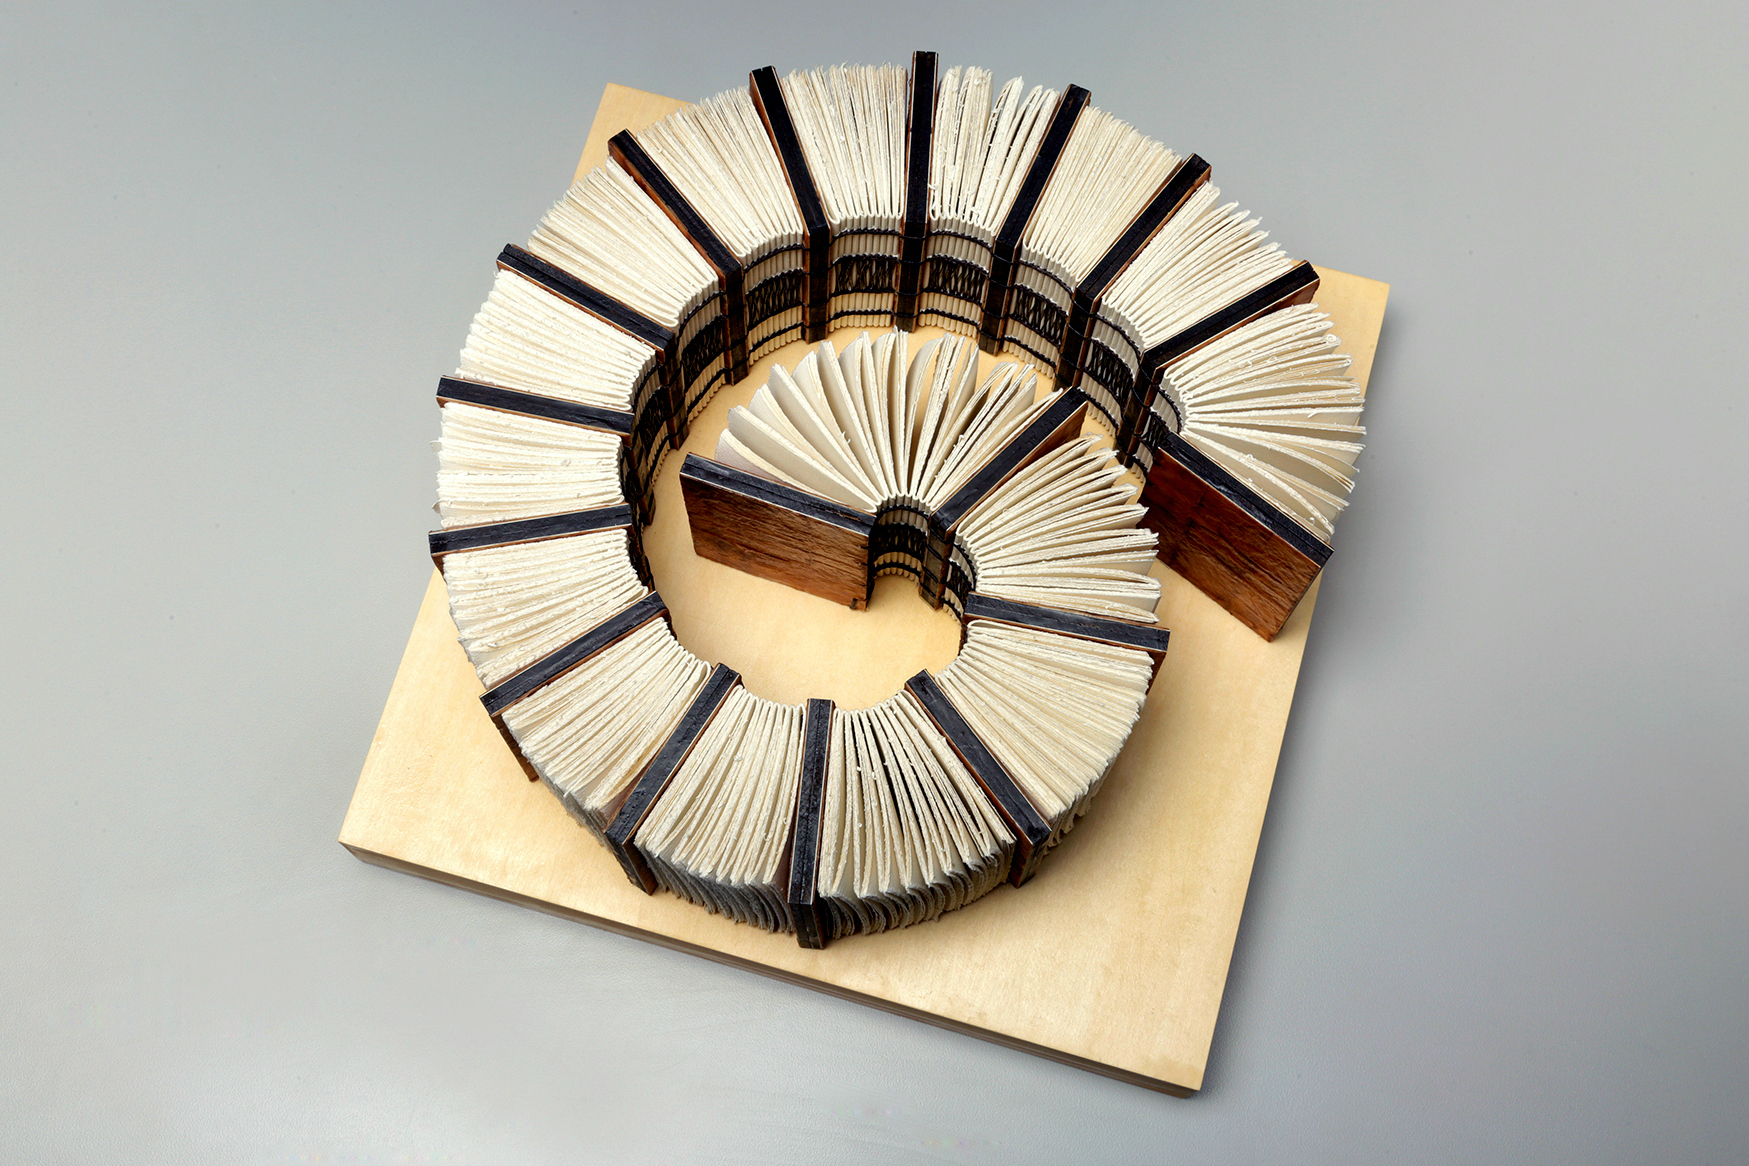 Between Time by Erin Keane : sculptural book : encaustic beeswax covers : 12 x 12 x 5 inches